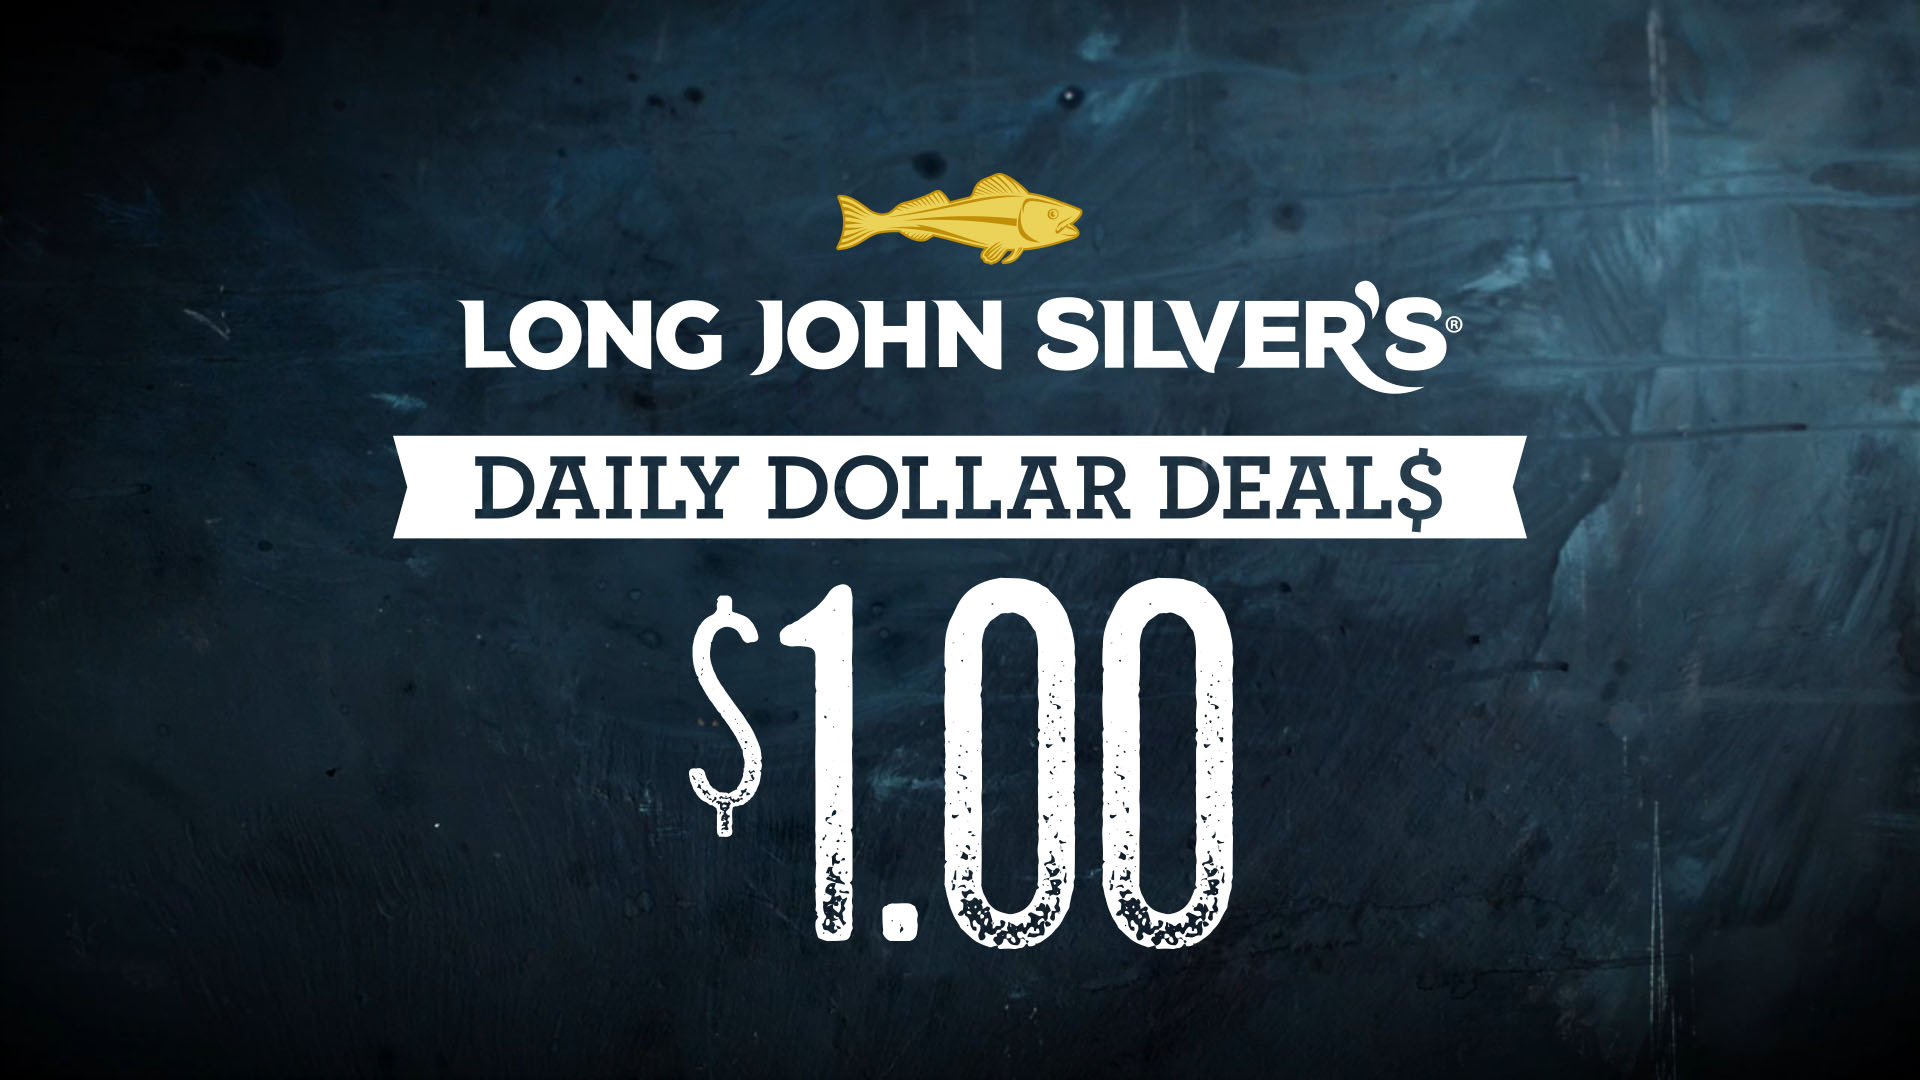 Long John Silvers Invites Guests To Catch A Daily 1 Deal